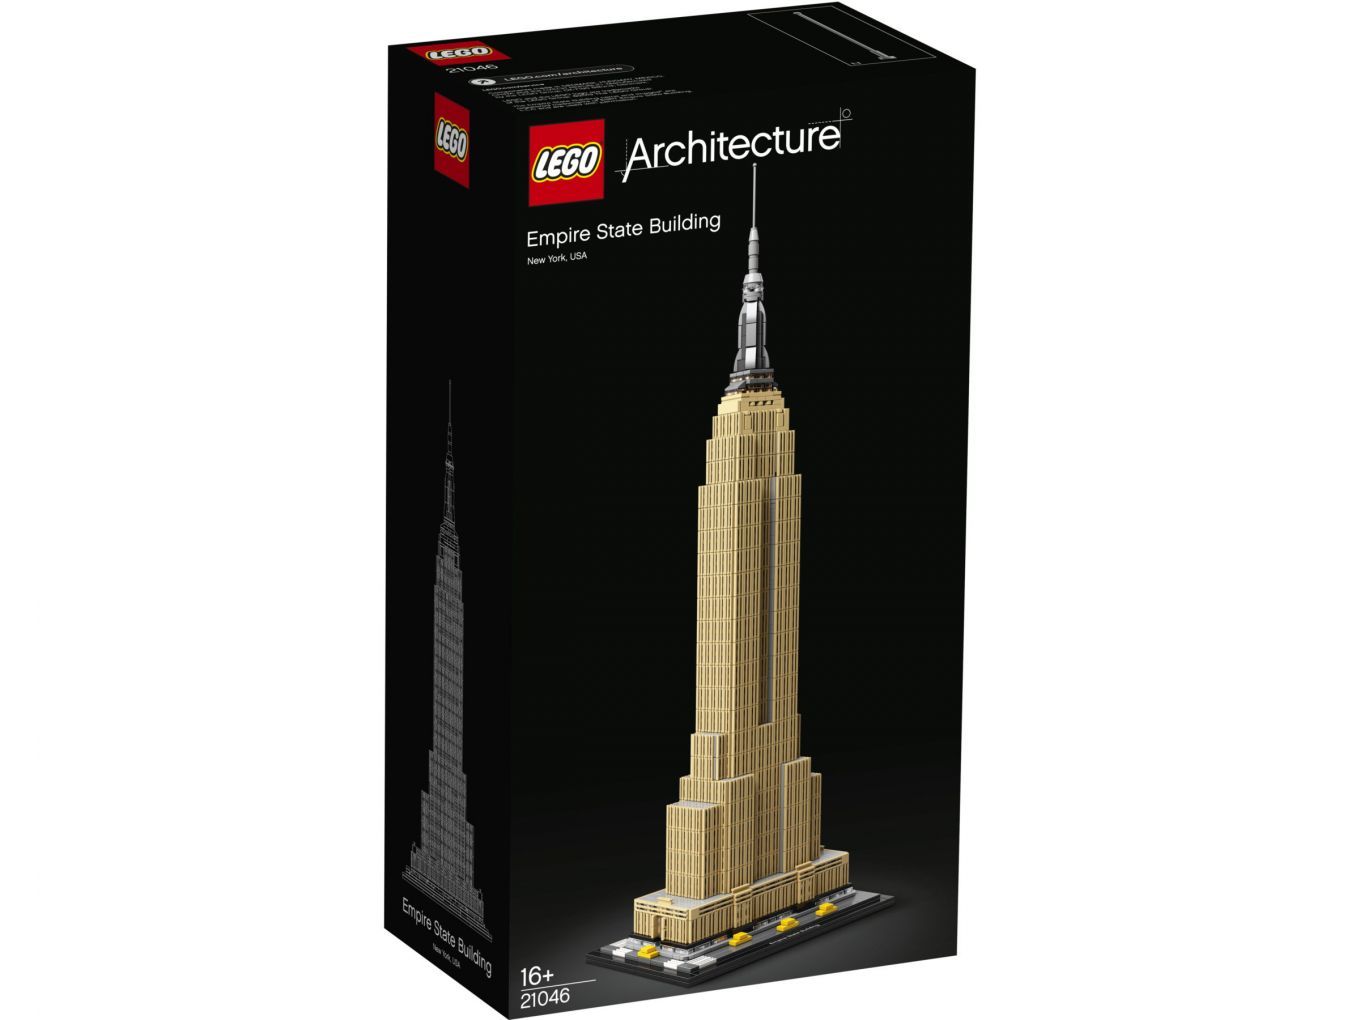 LEGO-Architecture-21046-Empire-State-Building-Box-Front.jpg